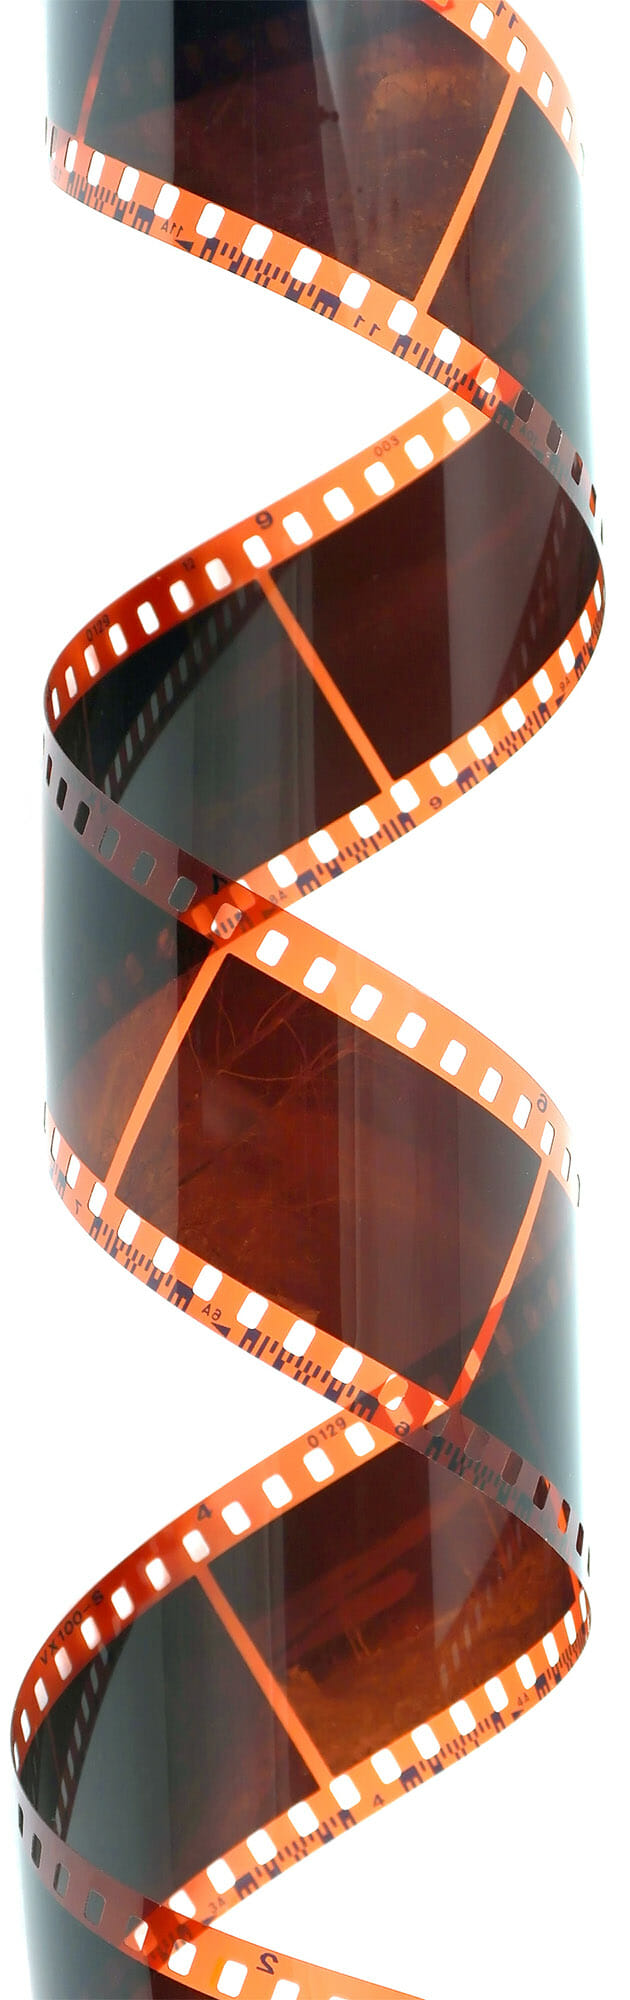 film reel twisted hollywood movie style tape